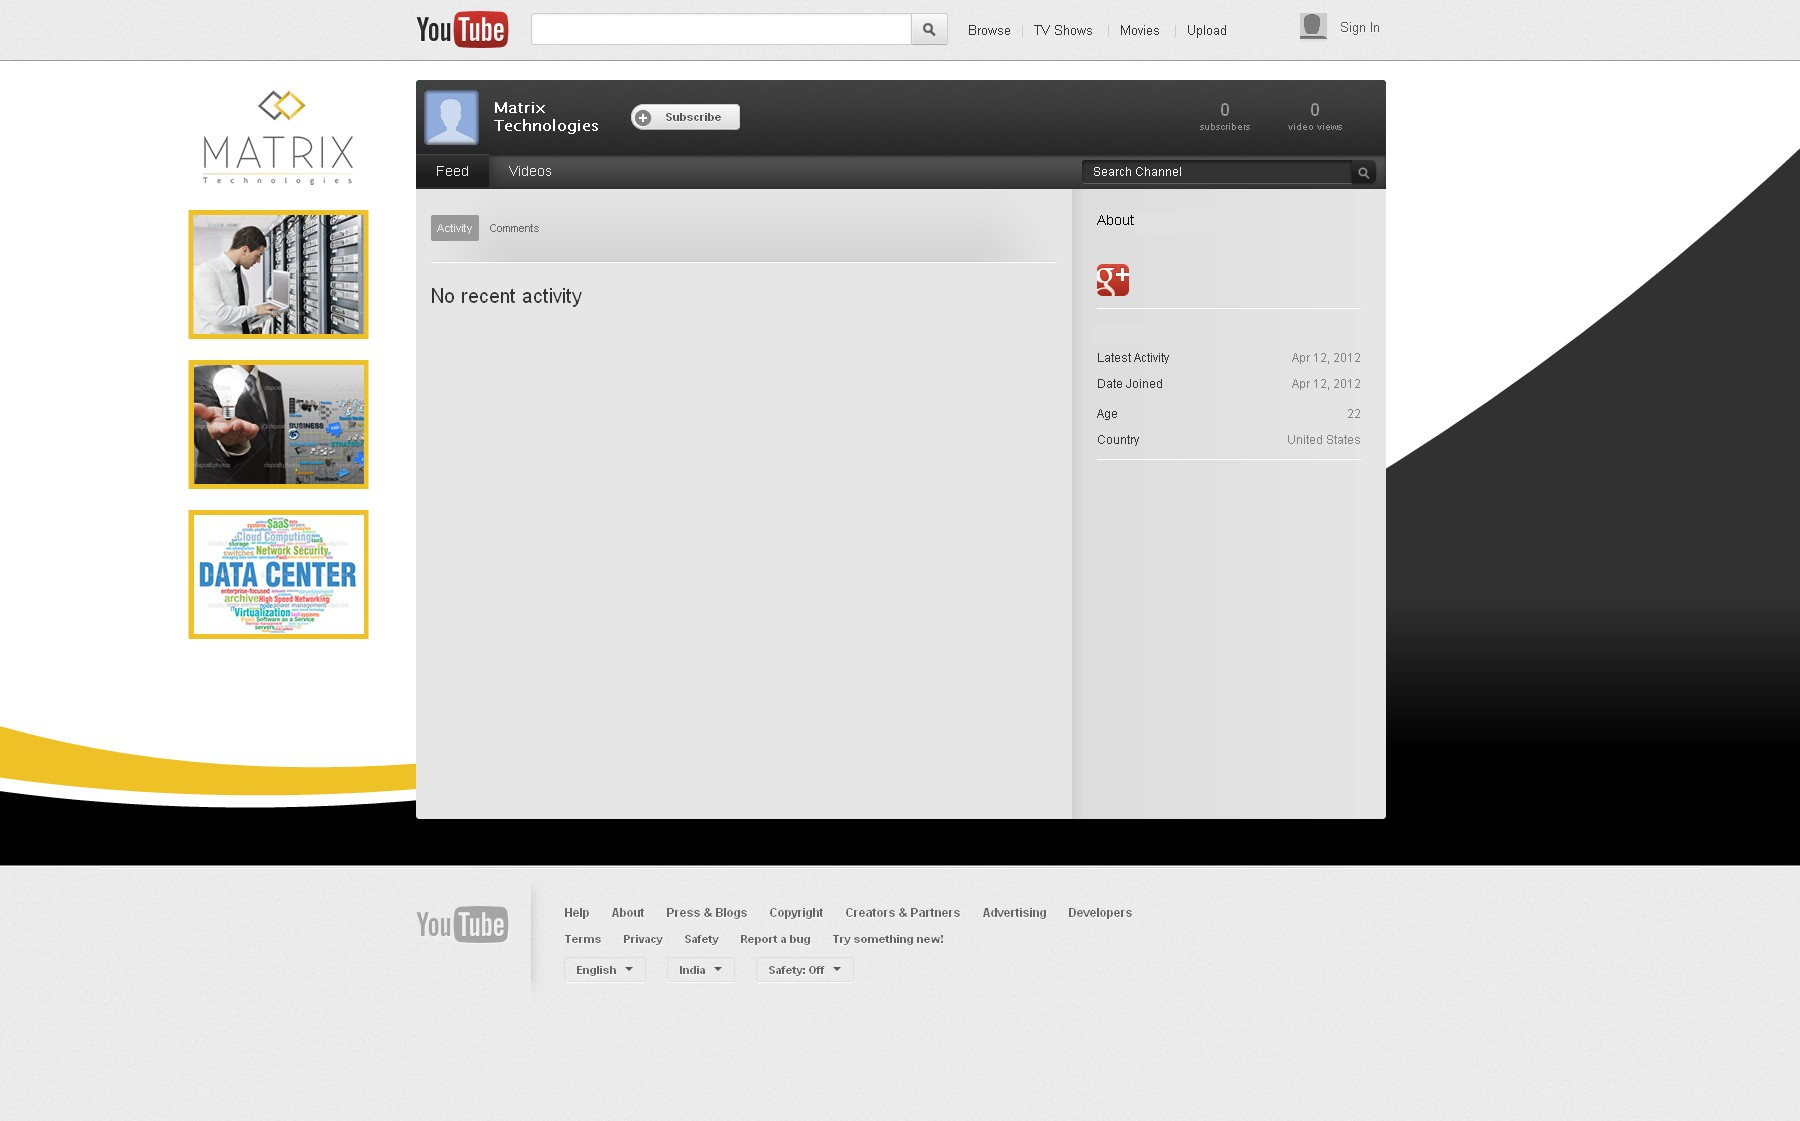 Youtube page design